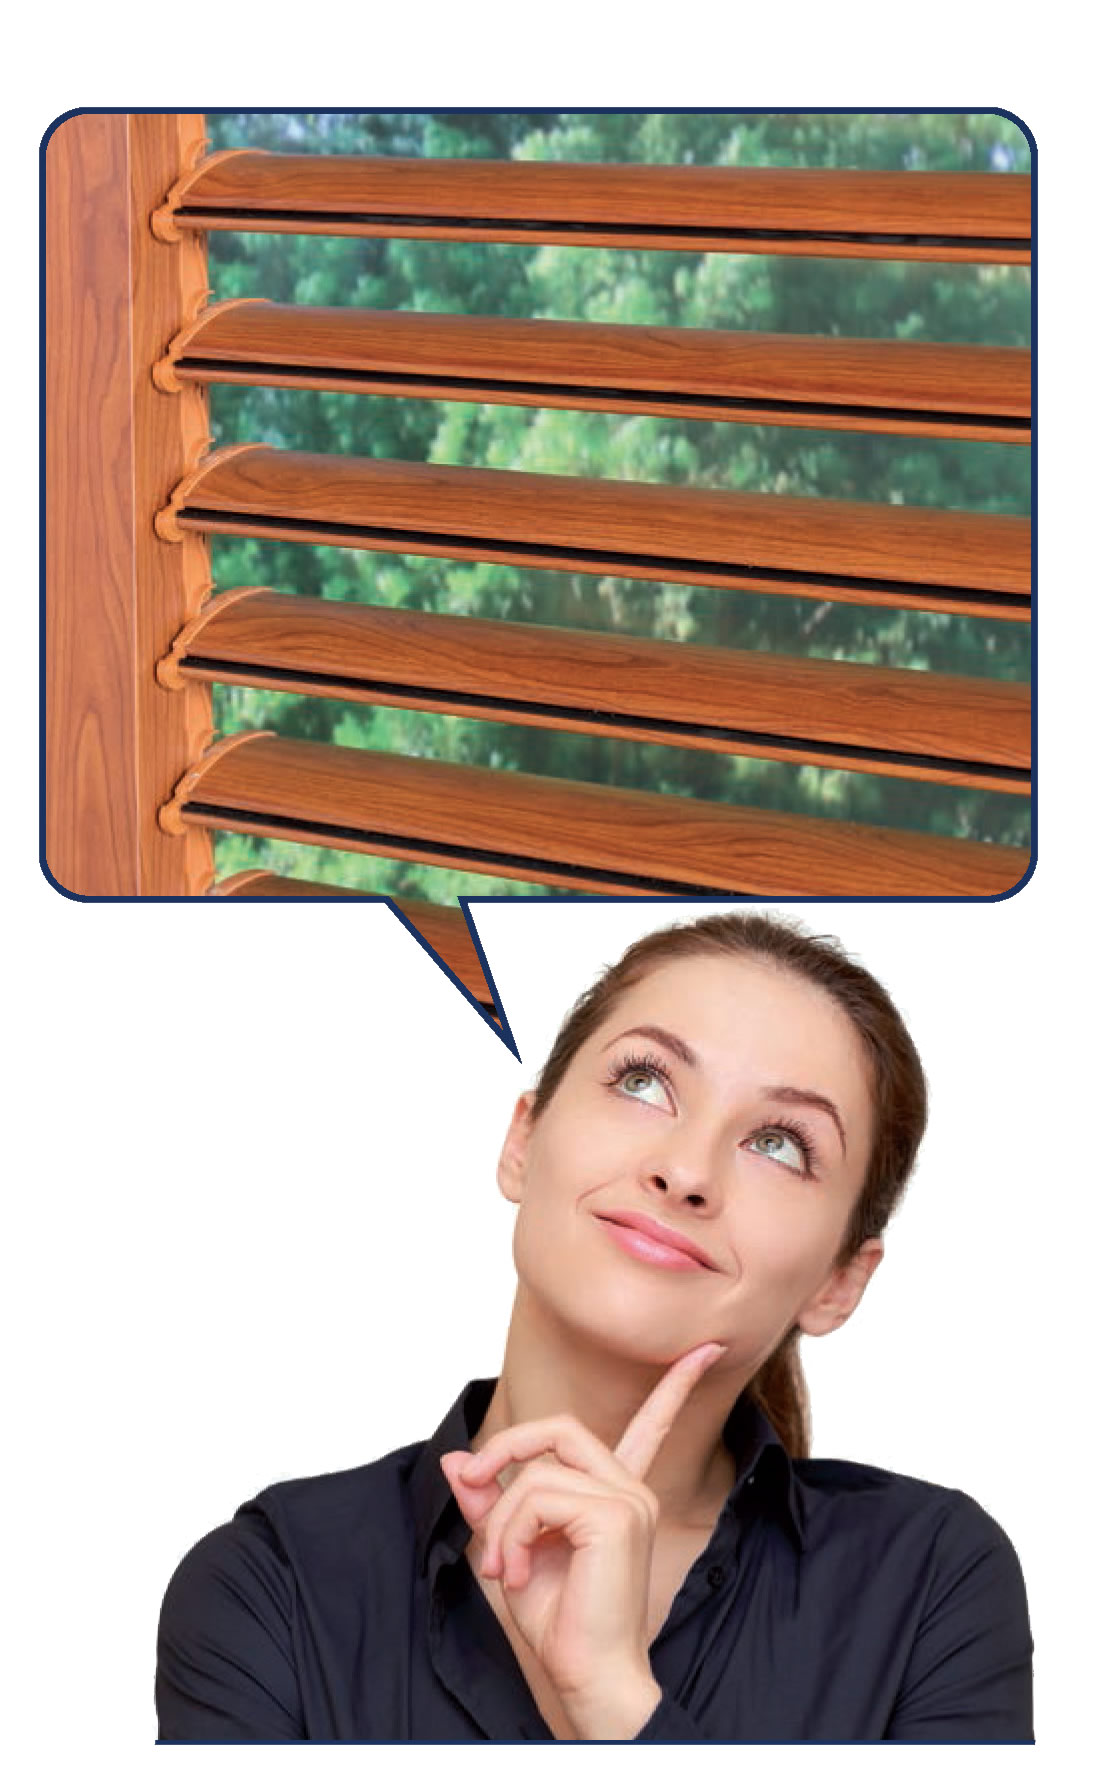 Roller Shutters With Adjustable Slats.